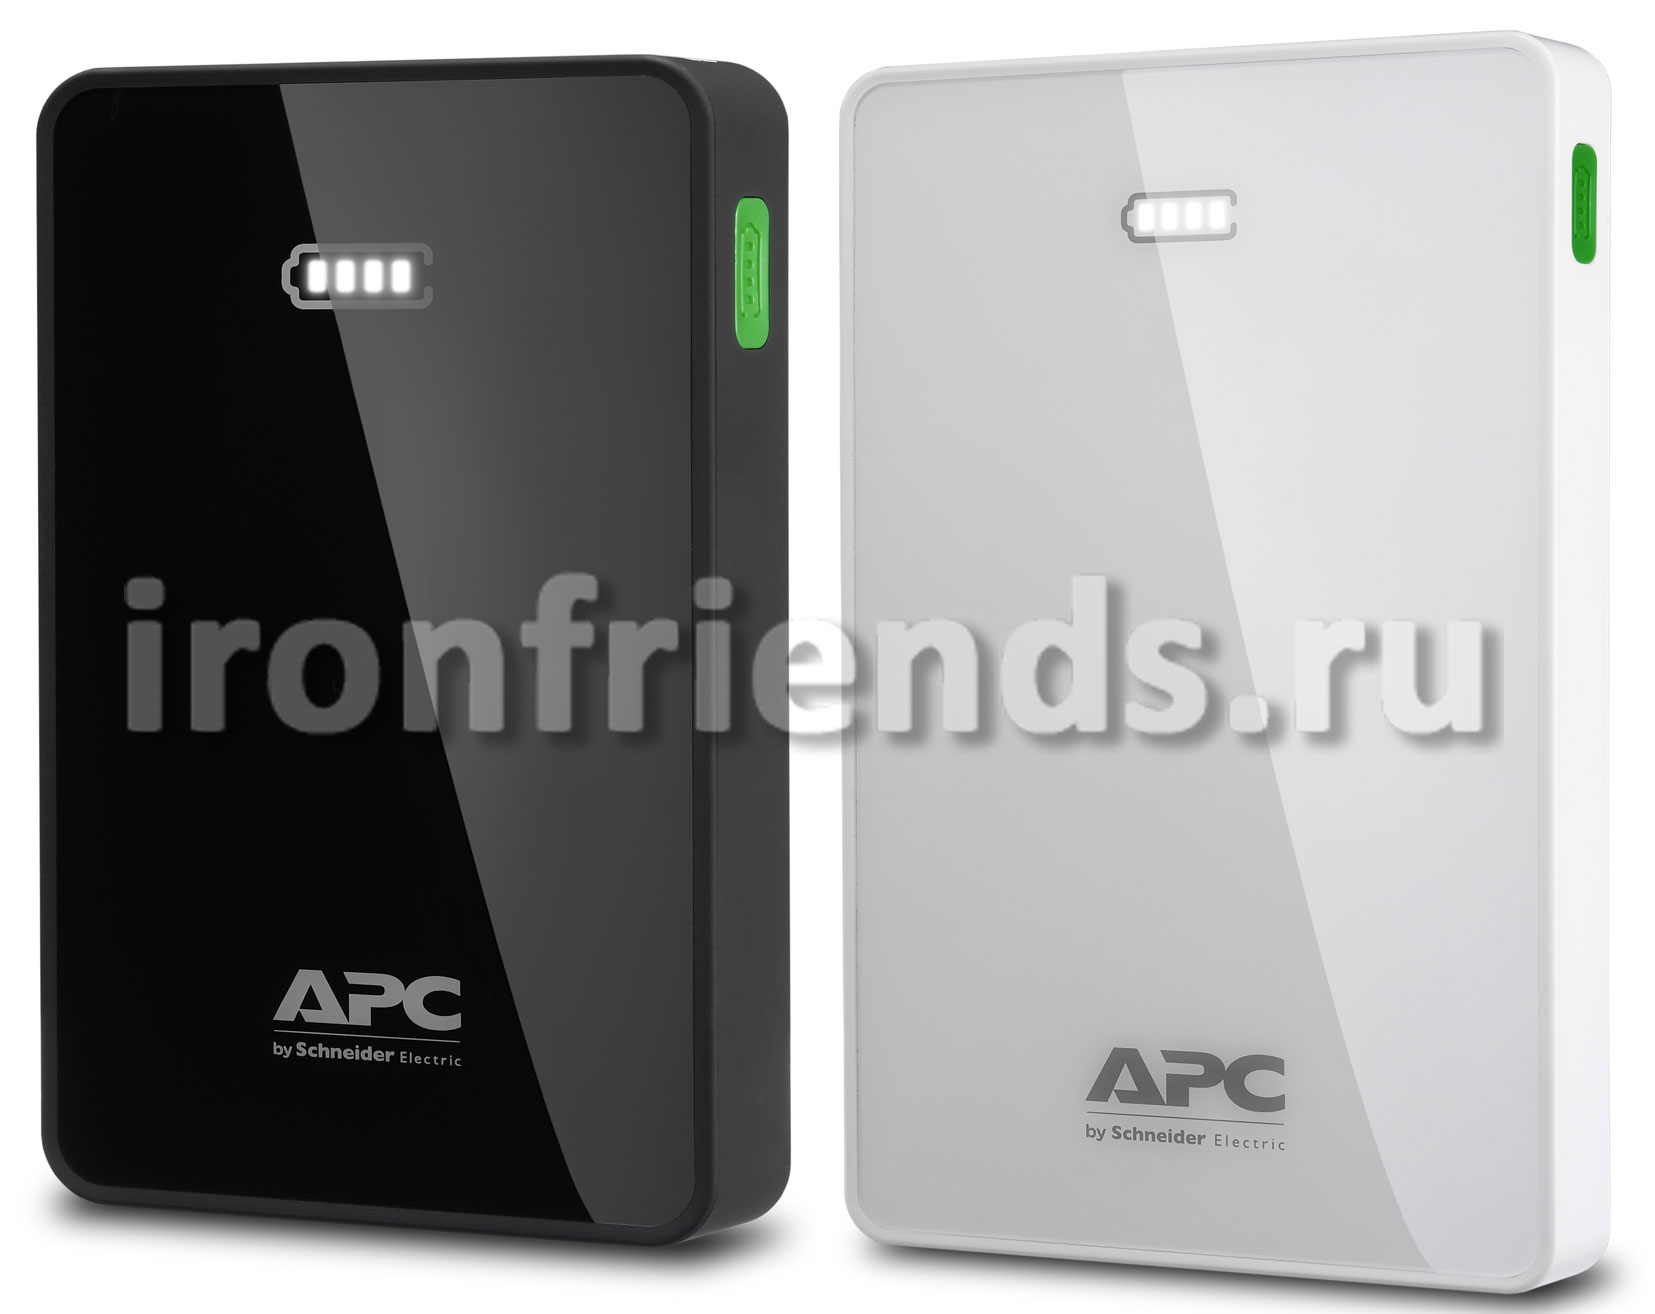 APC Mobile Power Pack M5 и M10